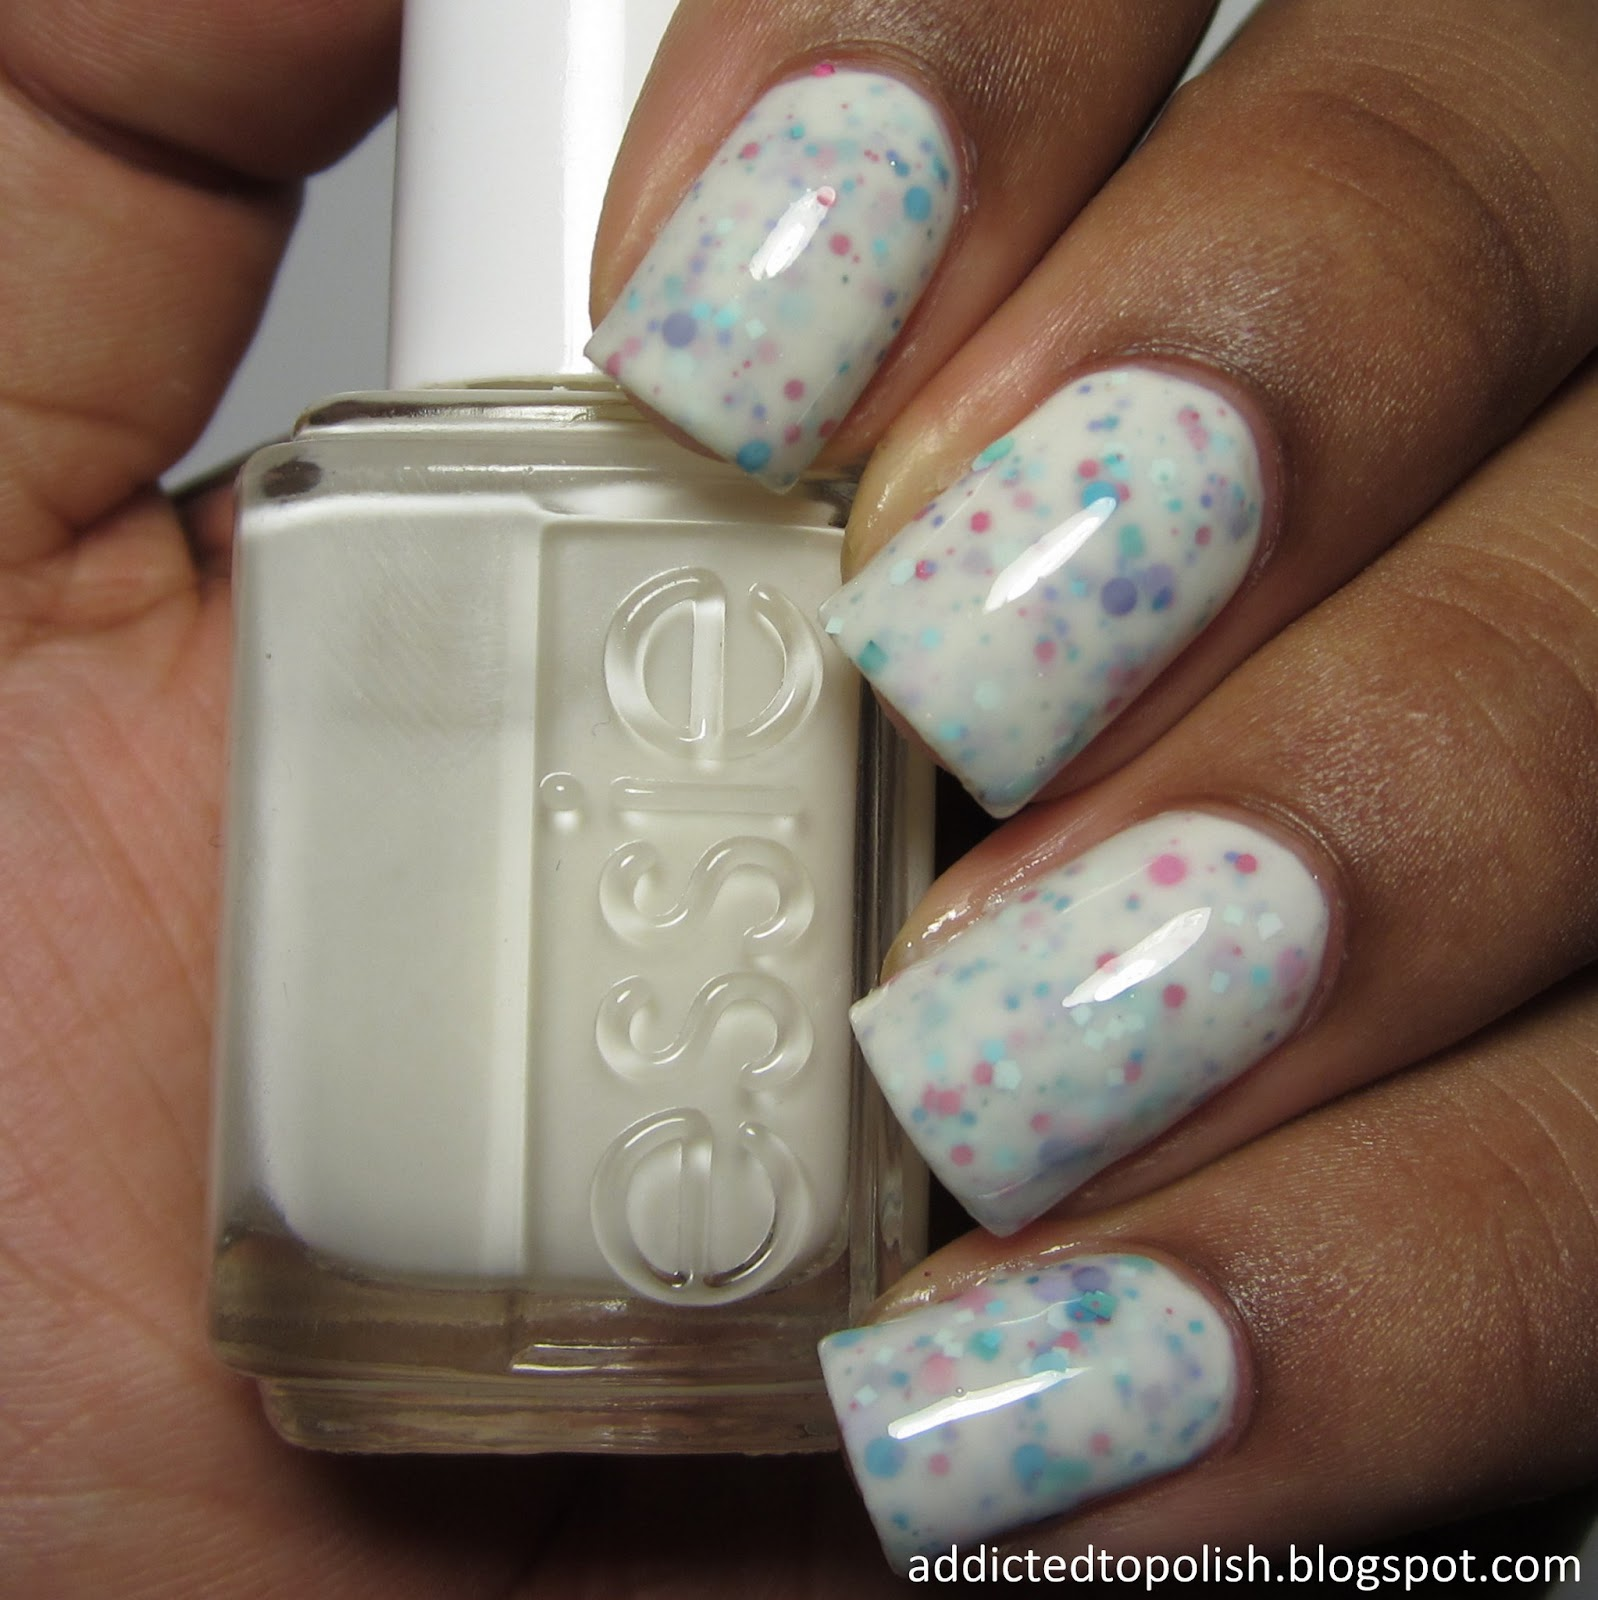 jelly sandwich essie marshmallow pahlish confettie cannon